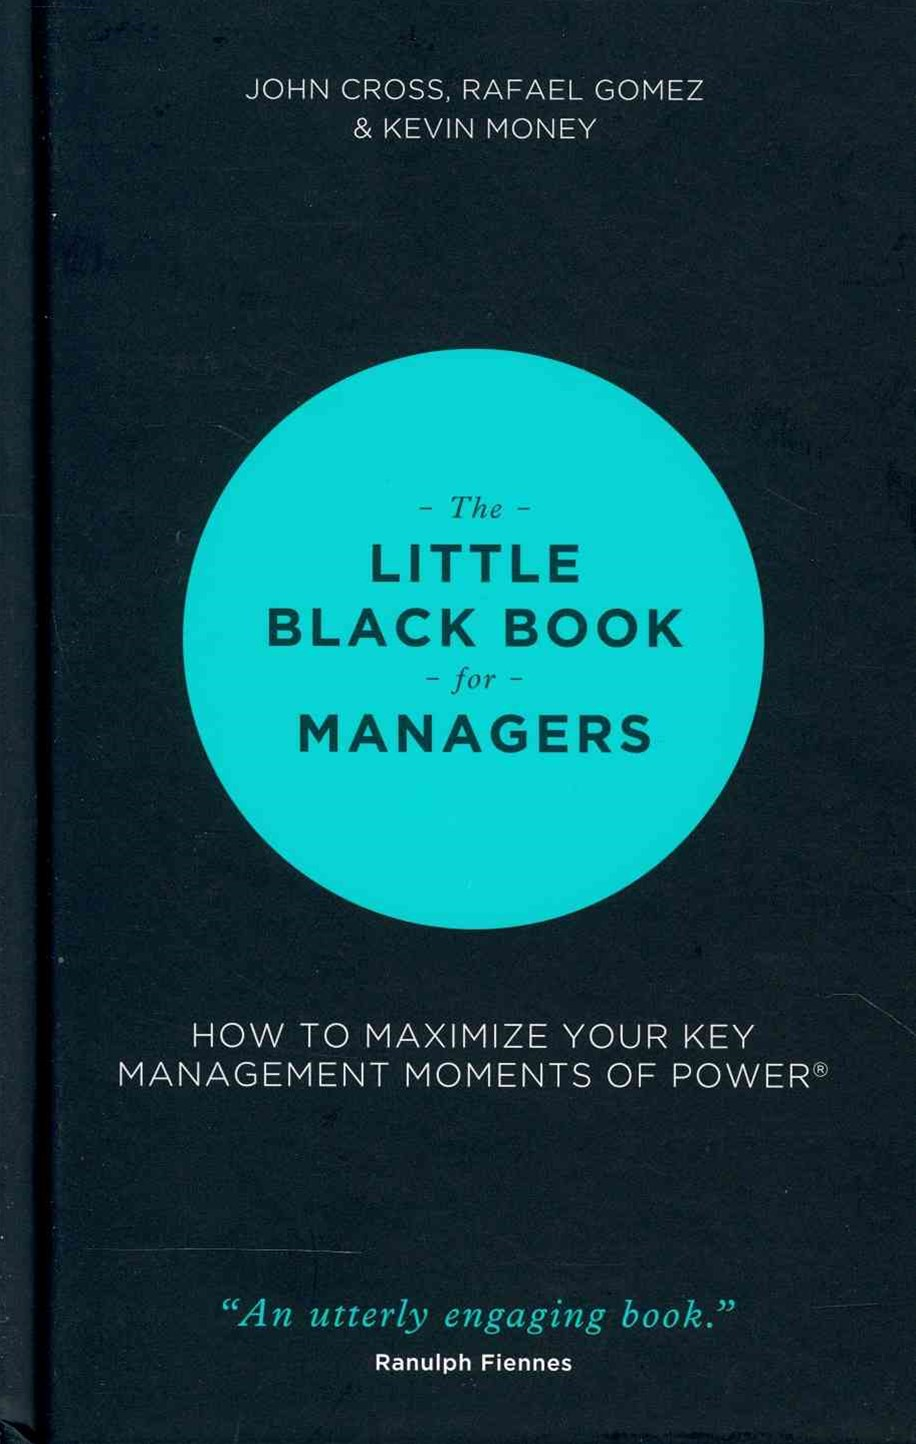 The Little Black Book for Managers - How to       Maximize Your Key Management Moments of Power